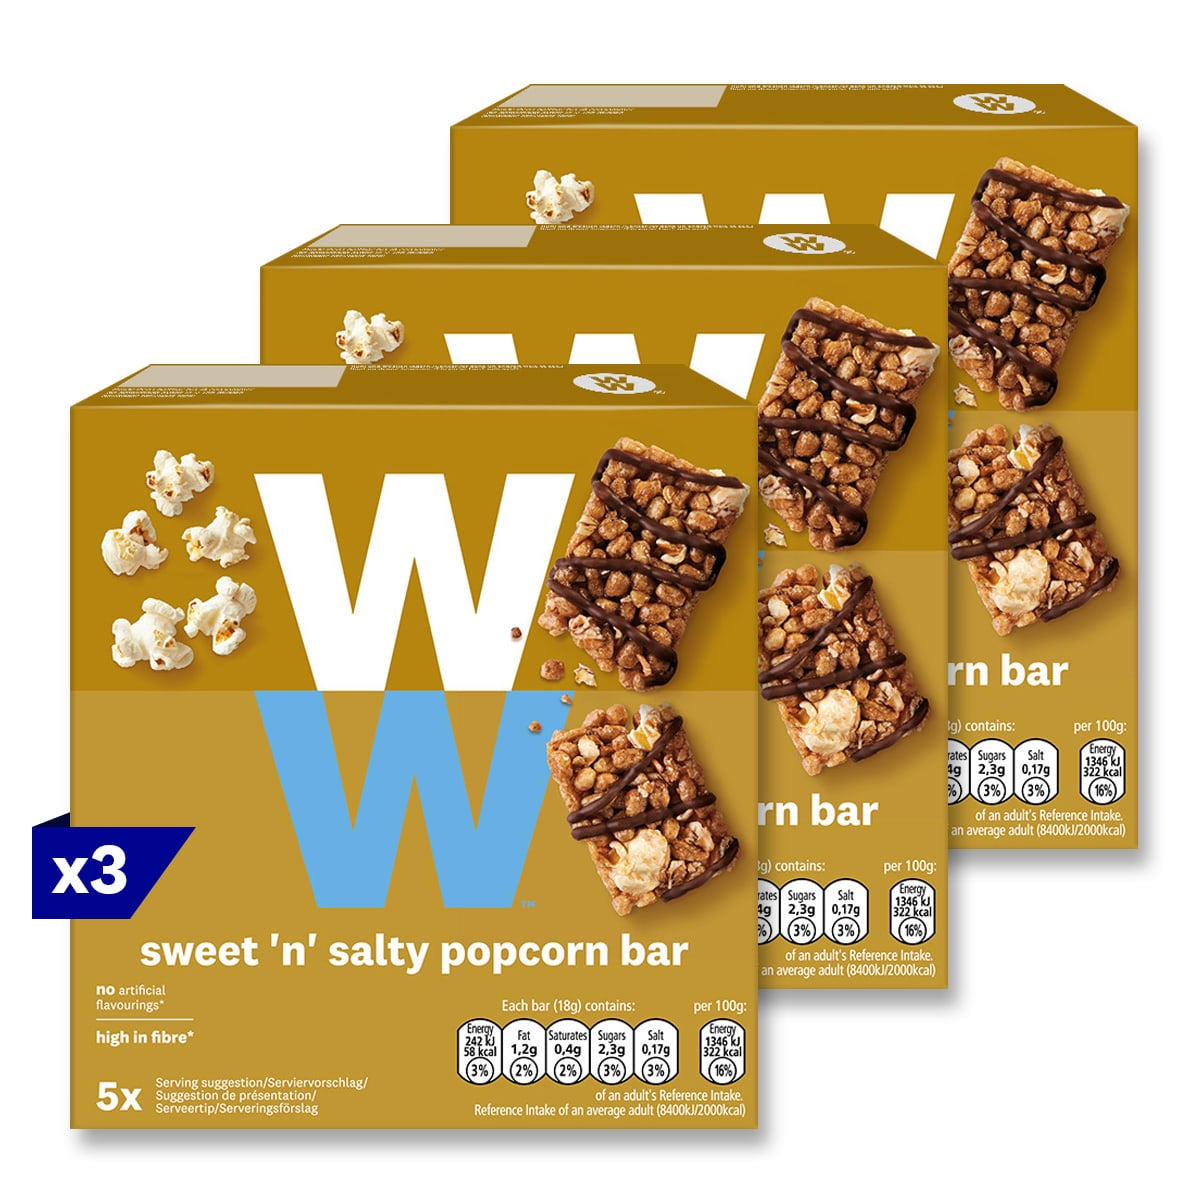 3 packs, WW Sweet 'n' Salty Popcorn Bar, topped with milk chocolate, high in fibre, 2 SmartPoints values, suitable for vegetarians